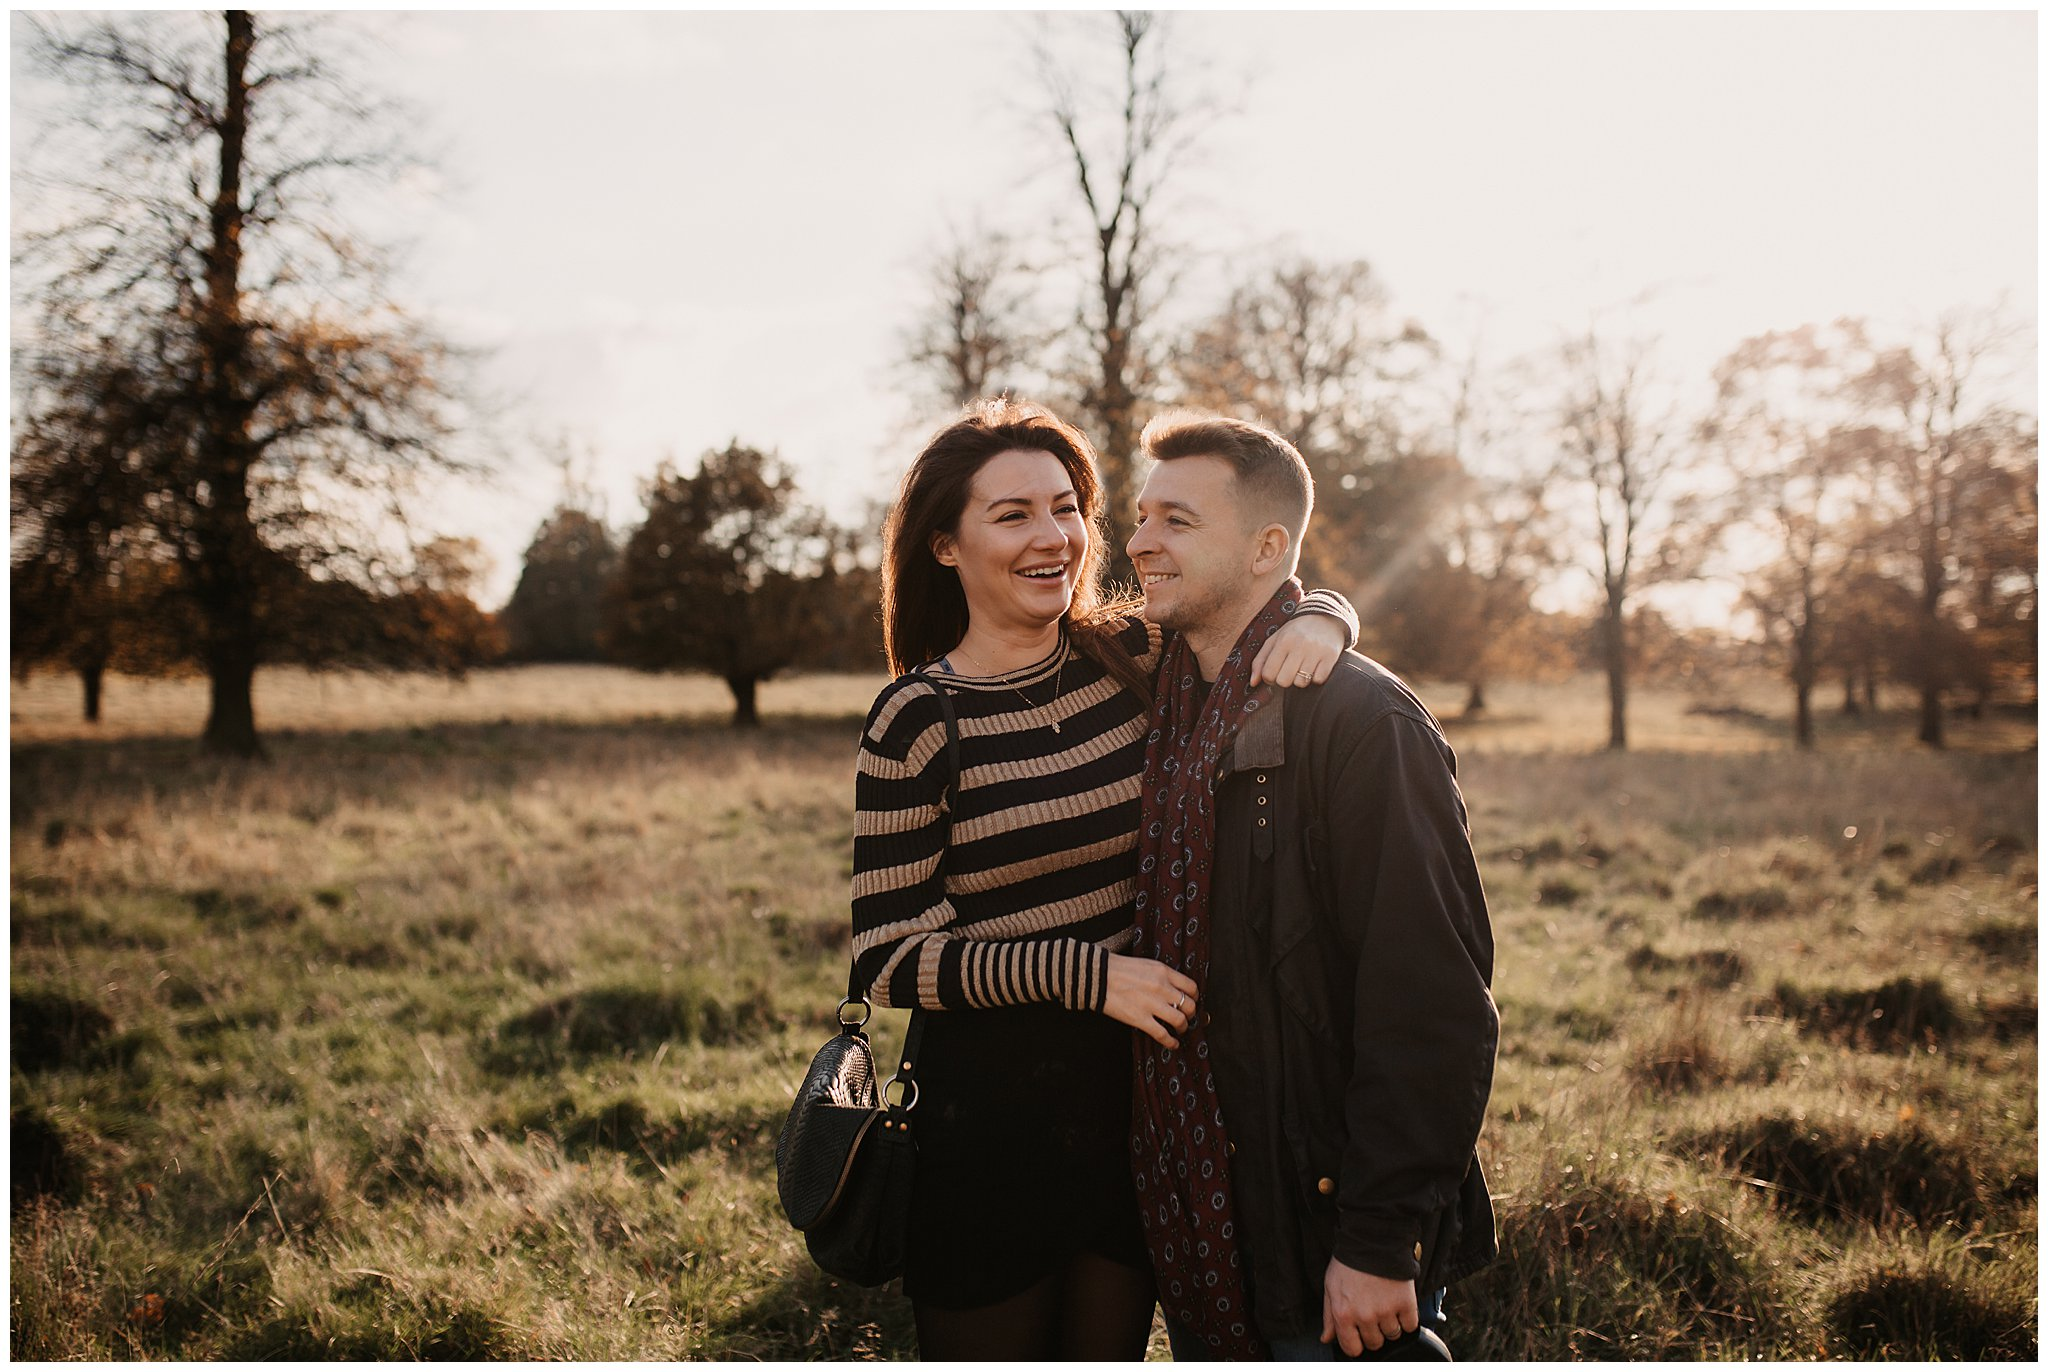 Charlie & Laurence Autumn Bushy Park Couple Shoot-76.jpg